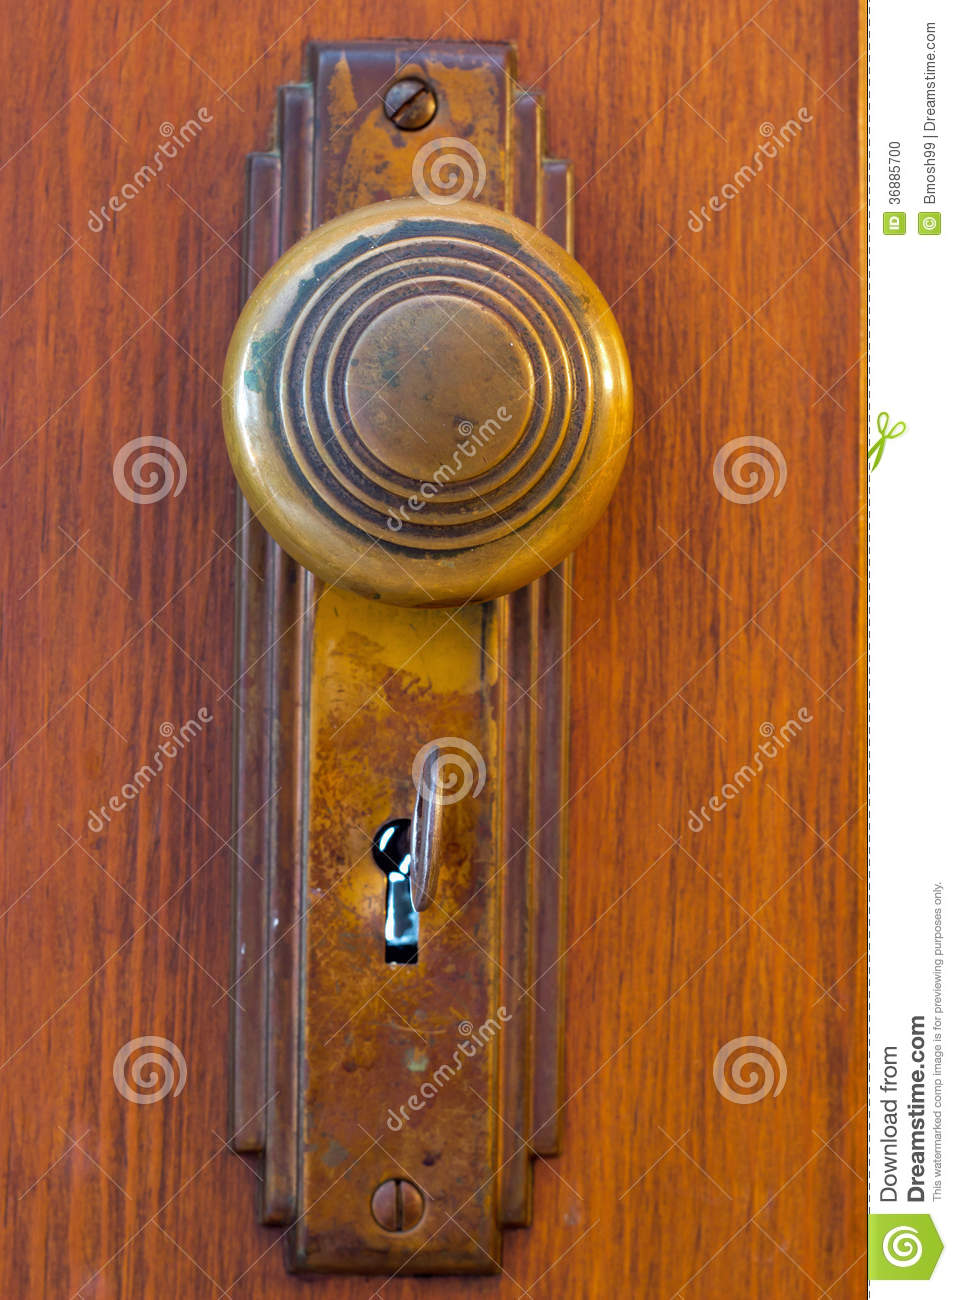 how to replace a keyhole door knob | Old Door knob with key stock photo. Image of wood, brass ...